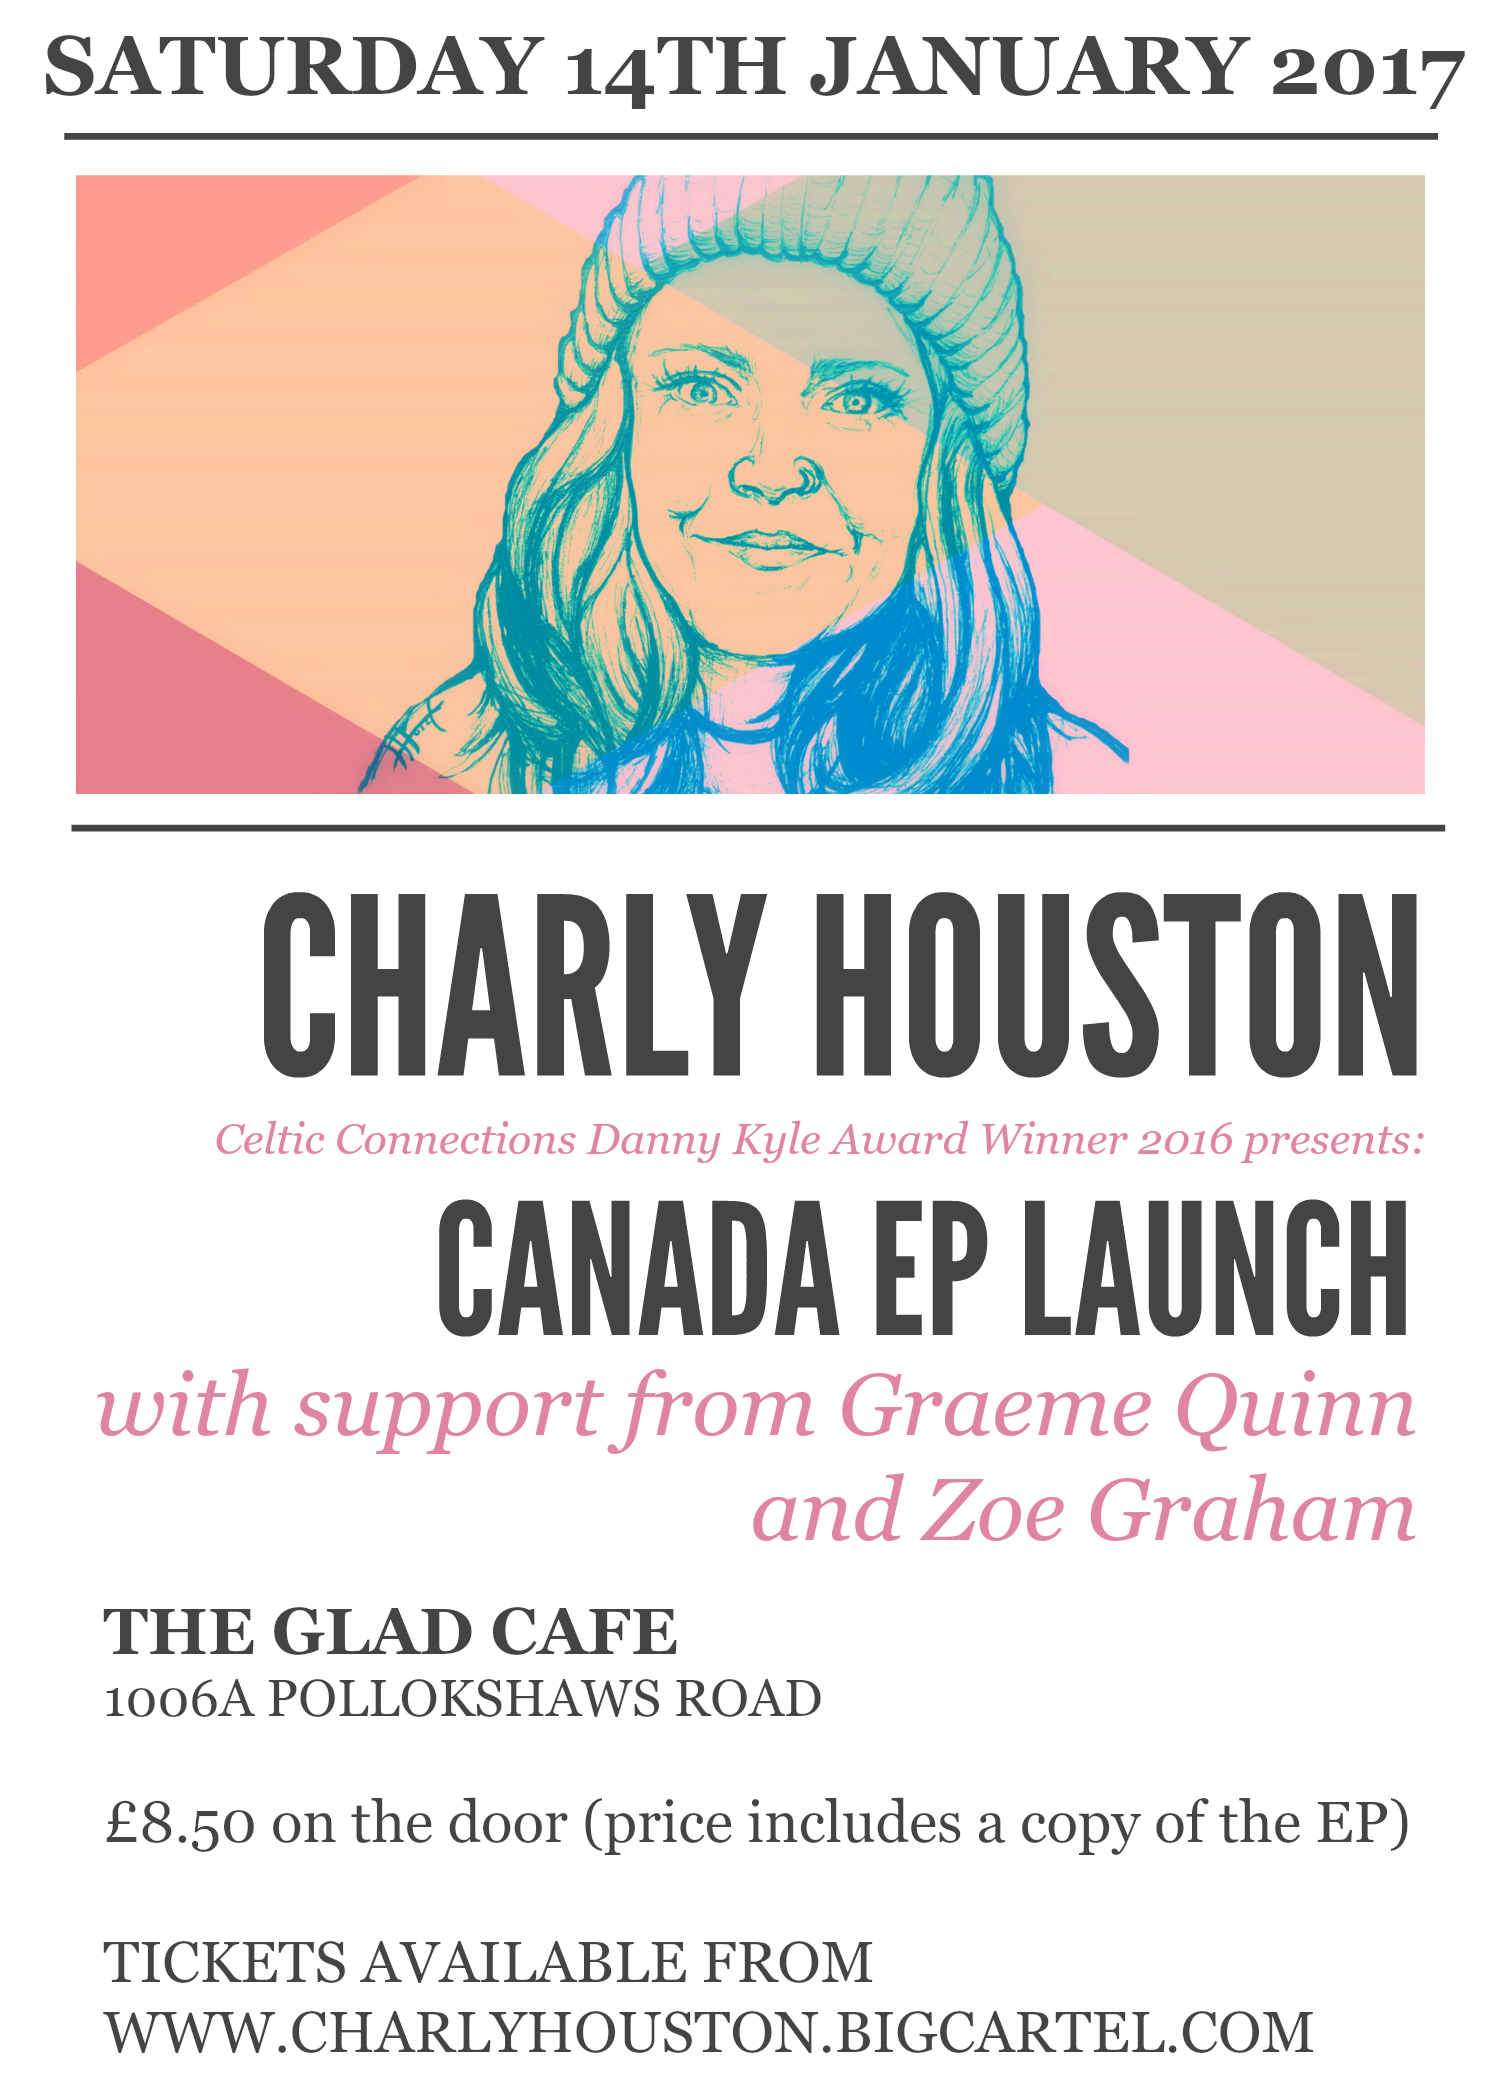 Charly Houston 'Canada' EP Launch